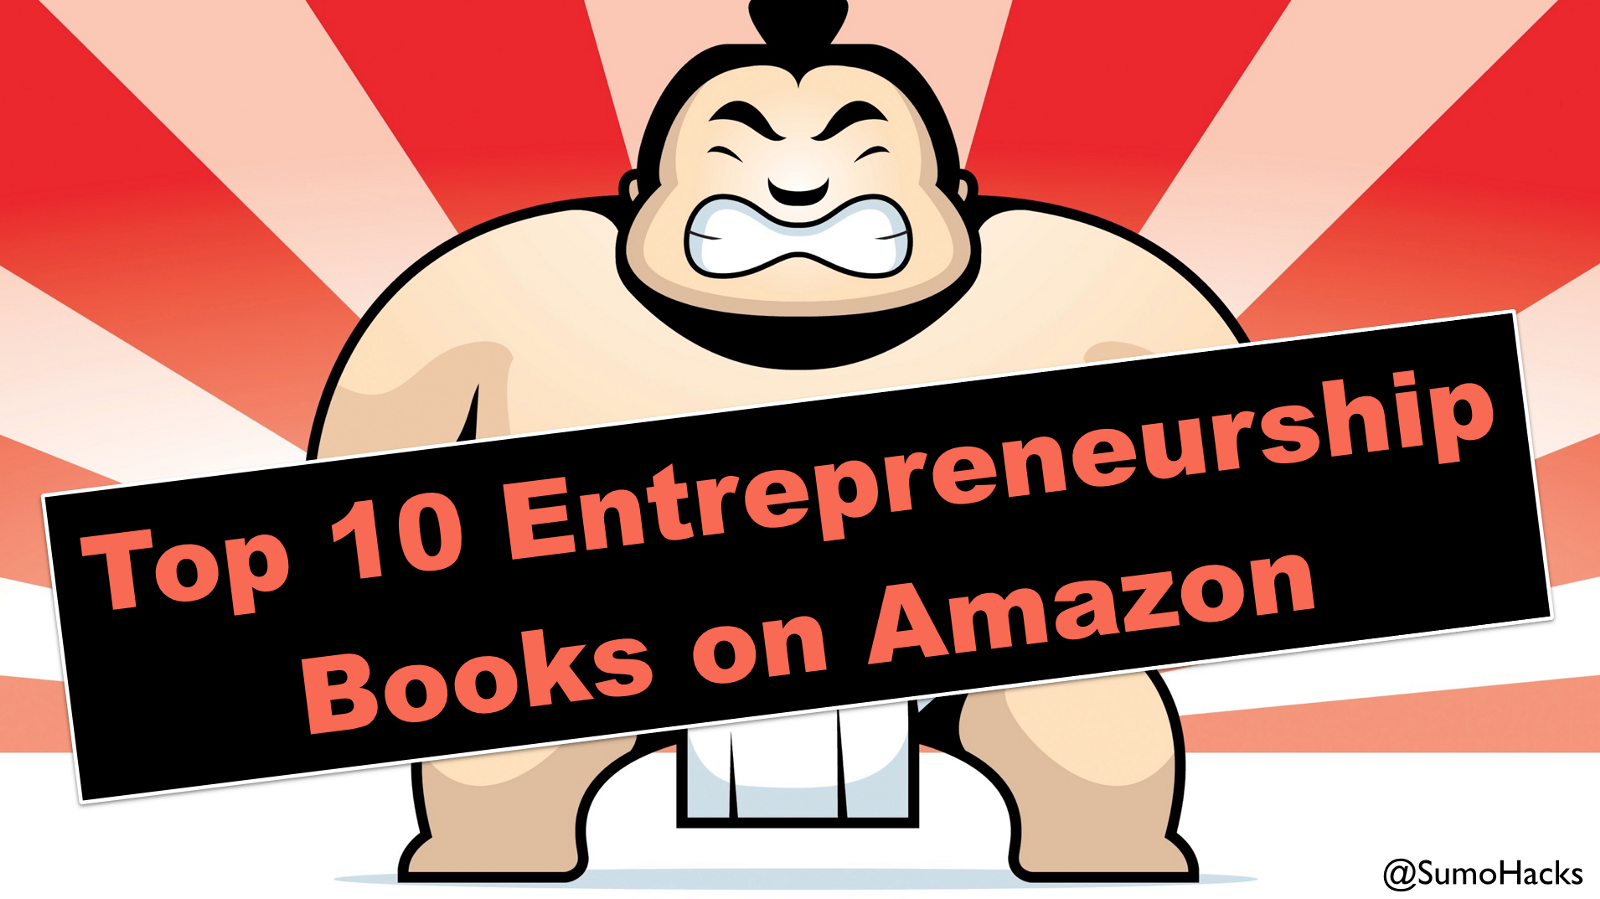 Rollercoaster clipart audacious. Top entrepreneurship books on